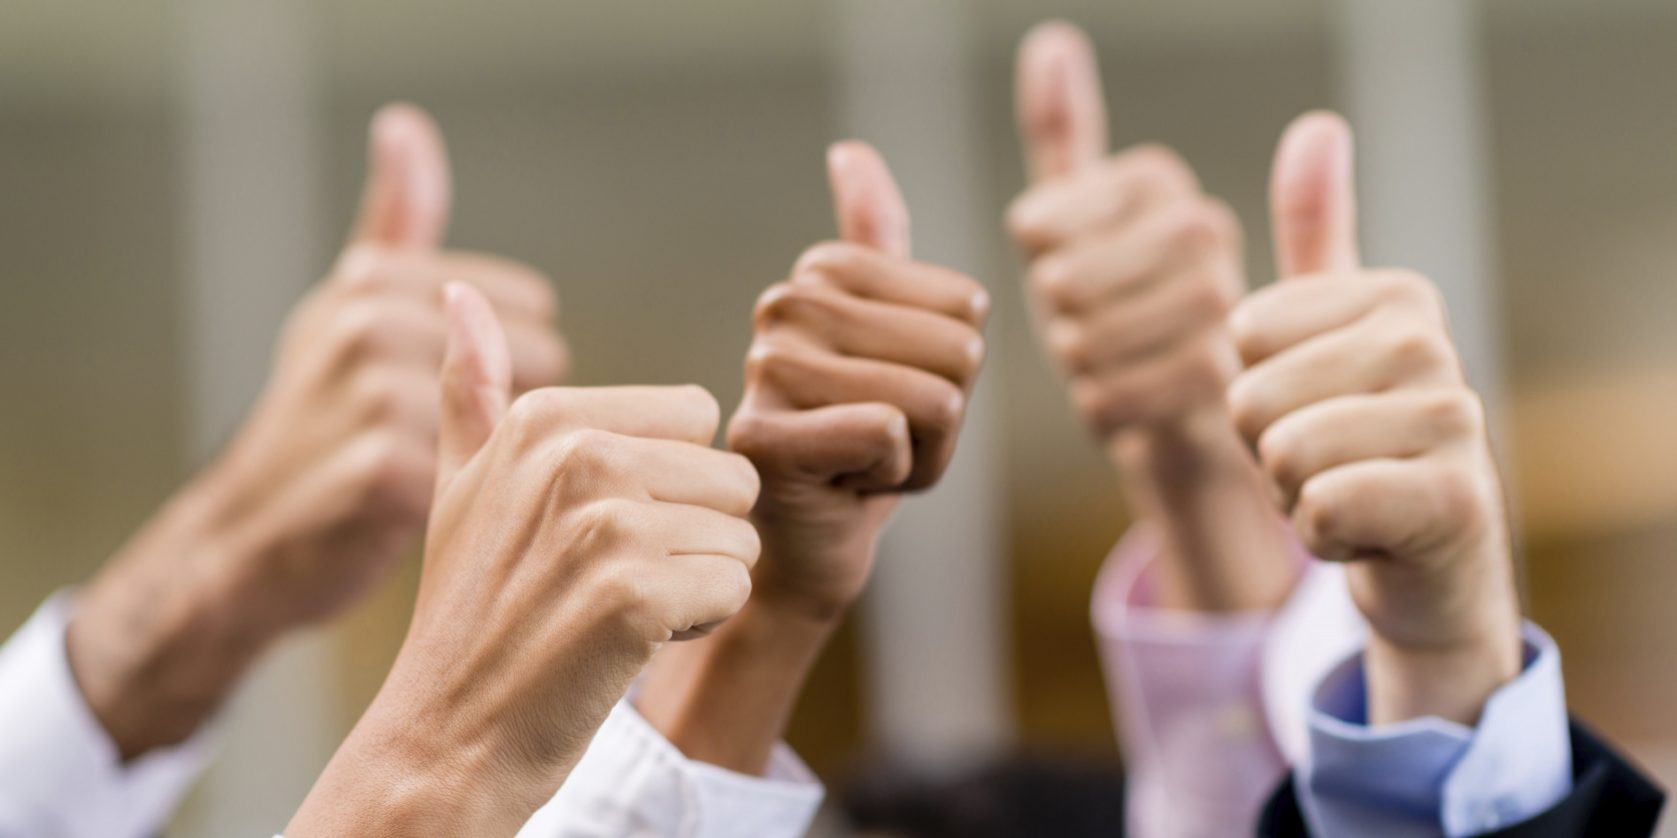 Business group with thumbs up expressing positivity